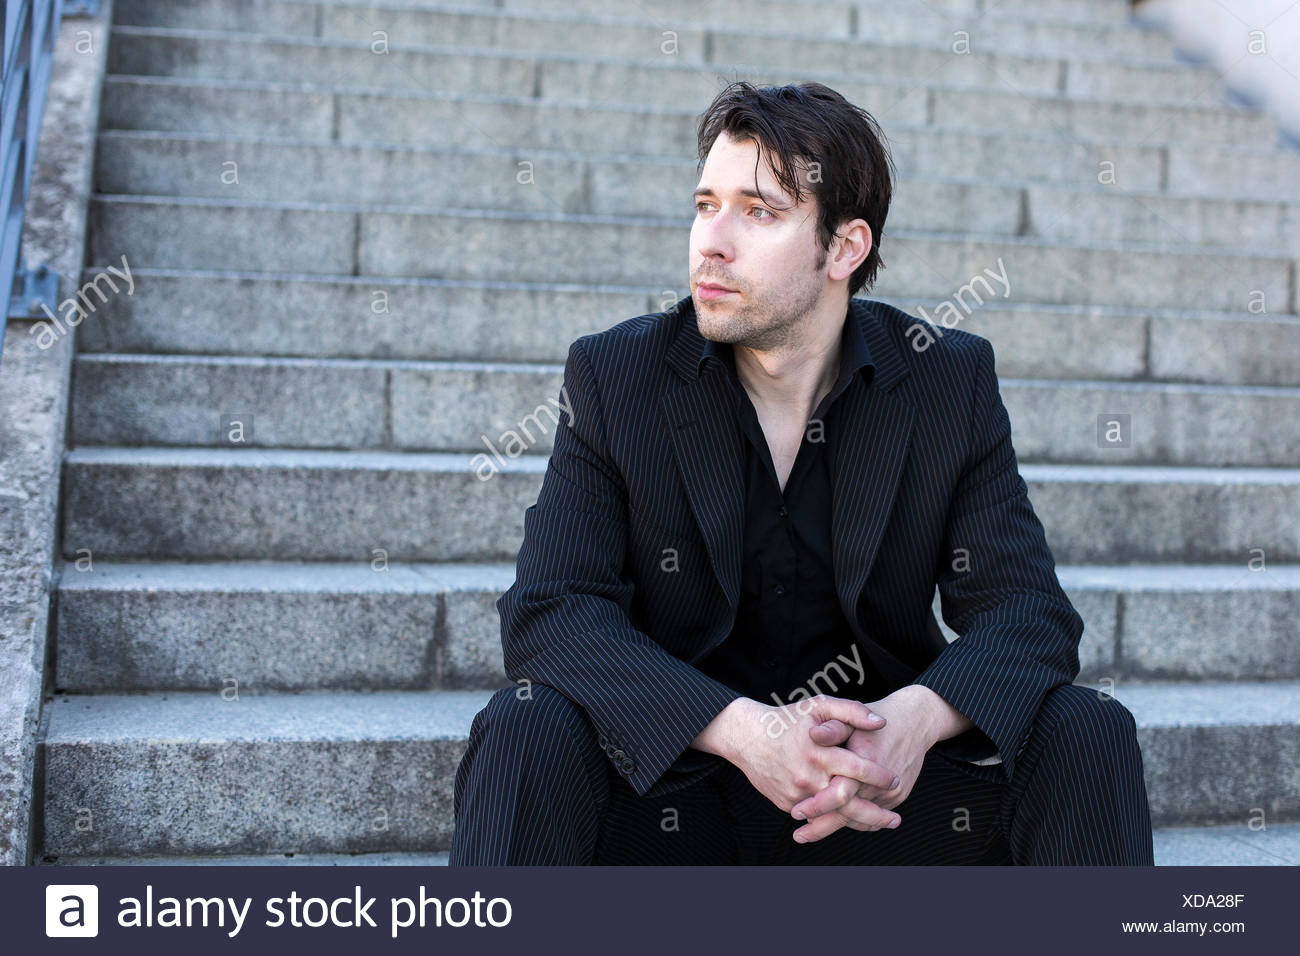 businessman sitting on stairs - Stock Image